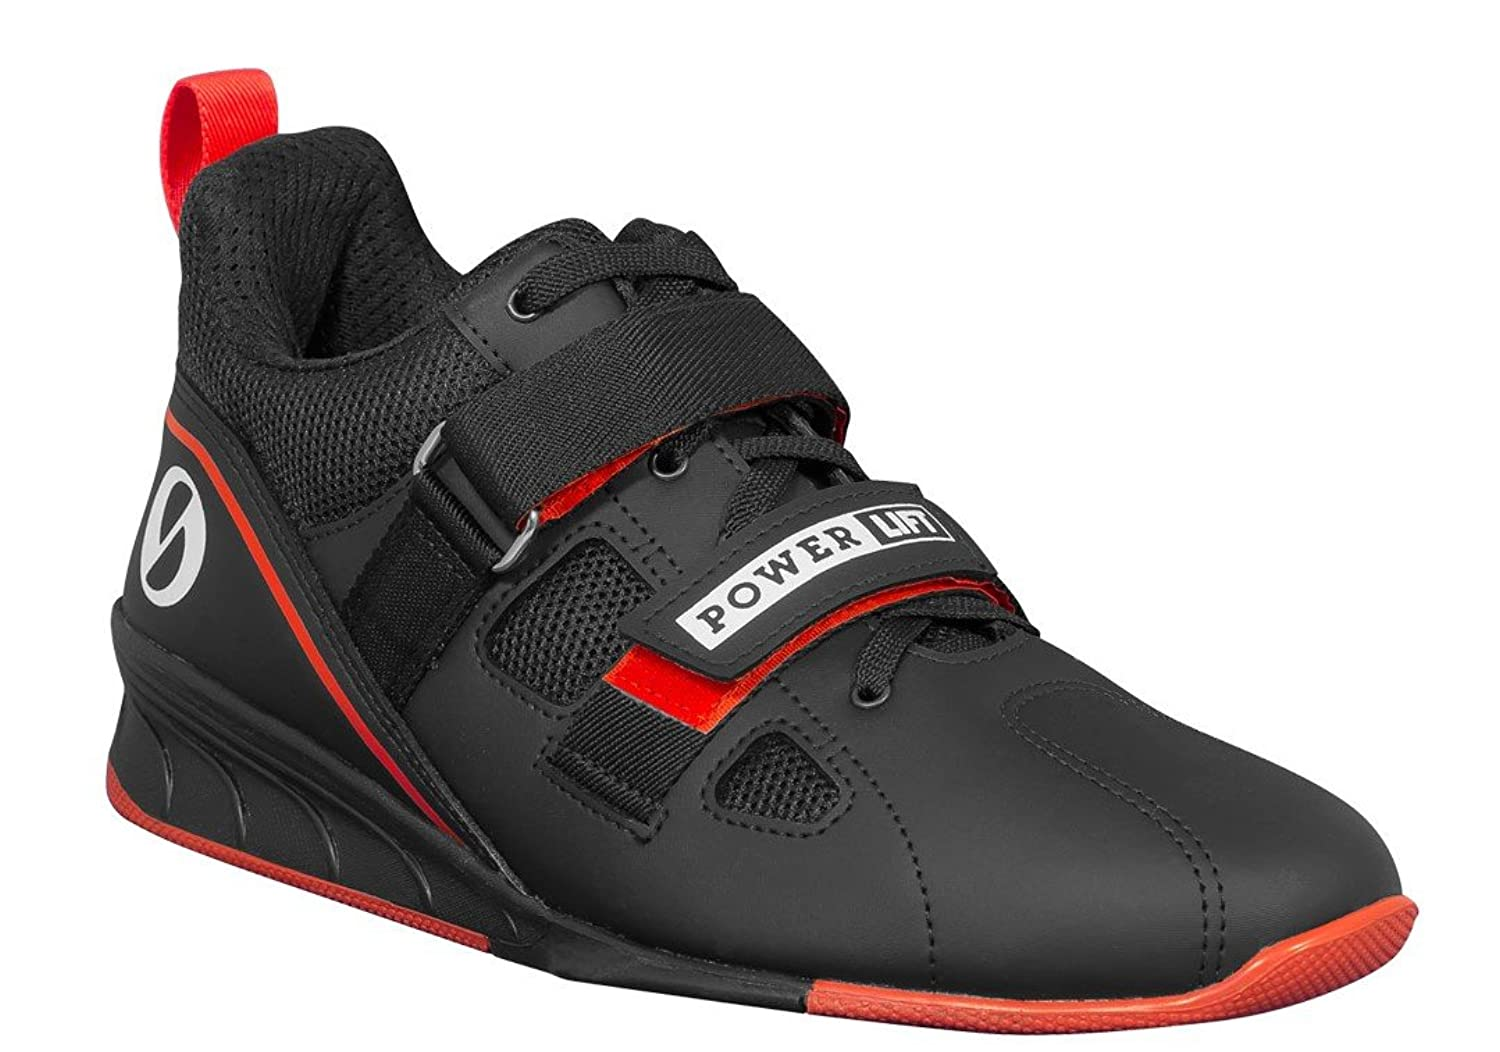 sabo Powerlift Weightlifting Shoes B079XXH1ZM 45 RUS / 12 - 12.5 US